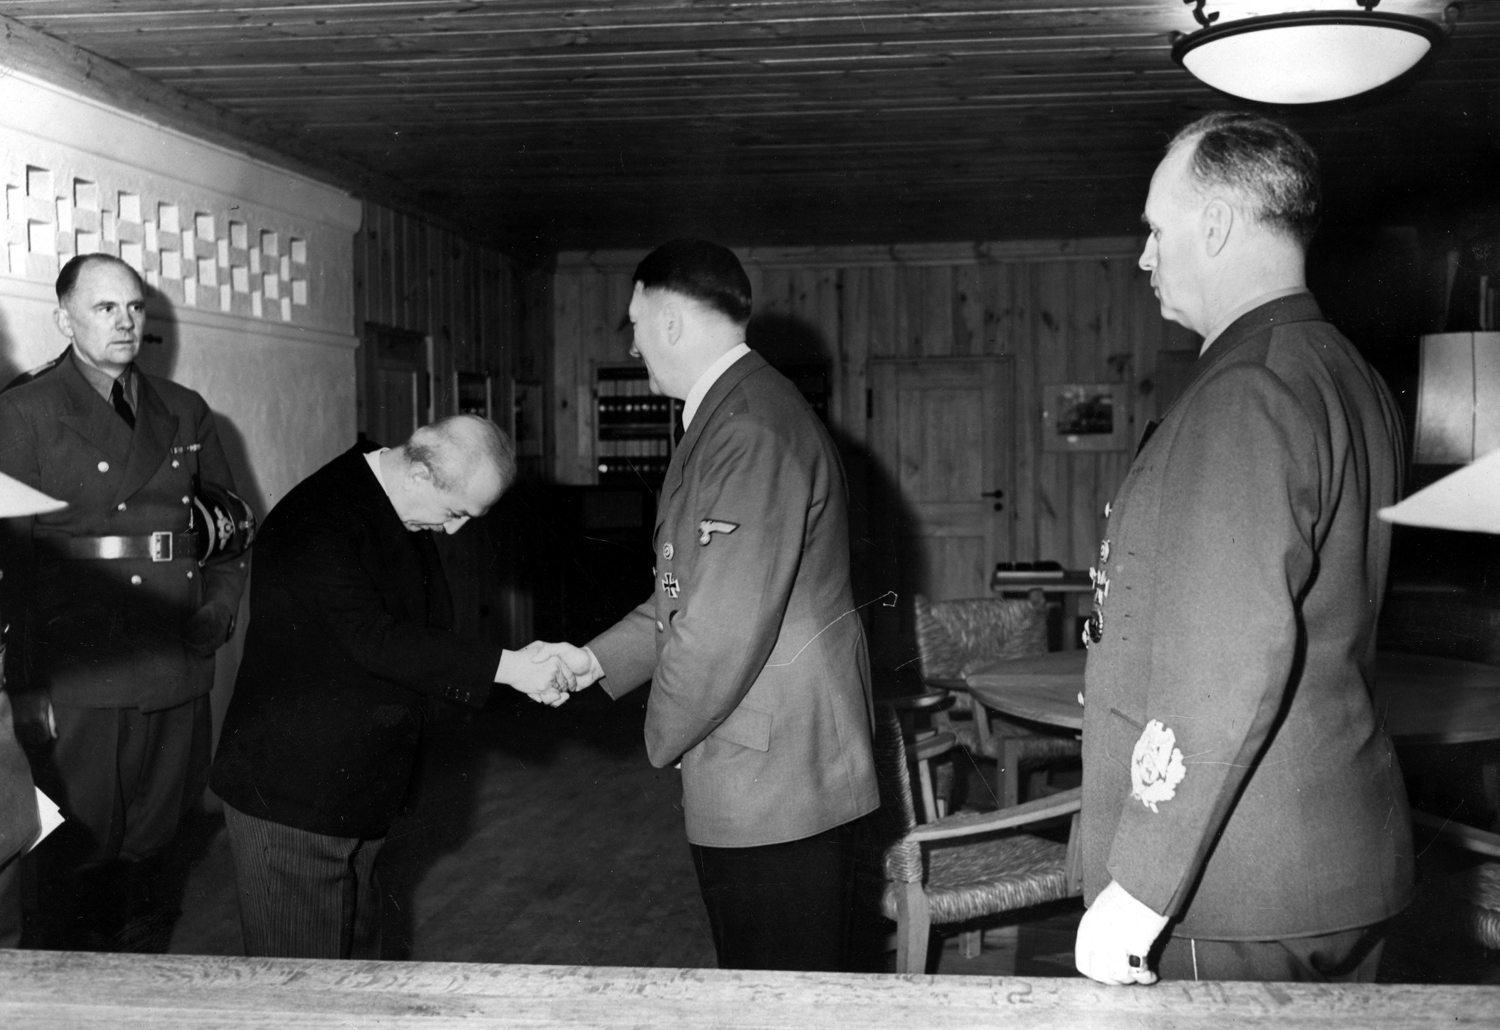 Adolf Hitler receives Turkish amabassador Saffet Arikan in Führerhauptquartier Werwolf